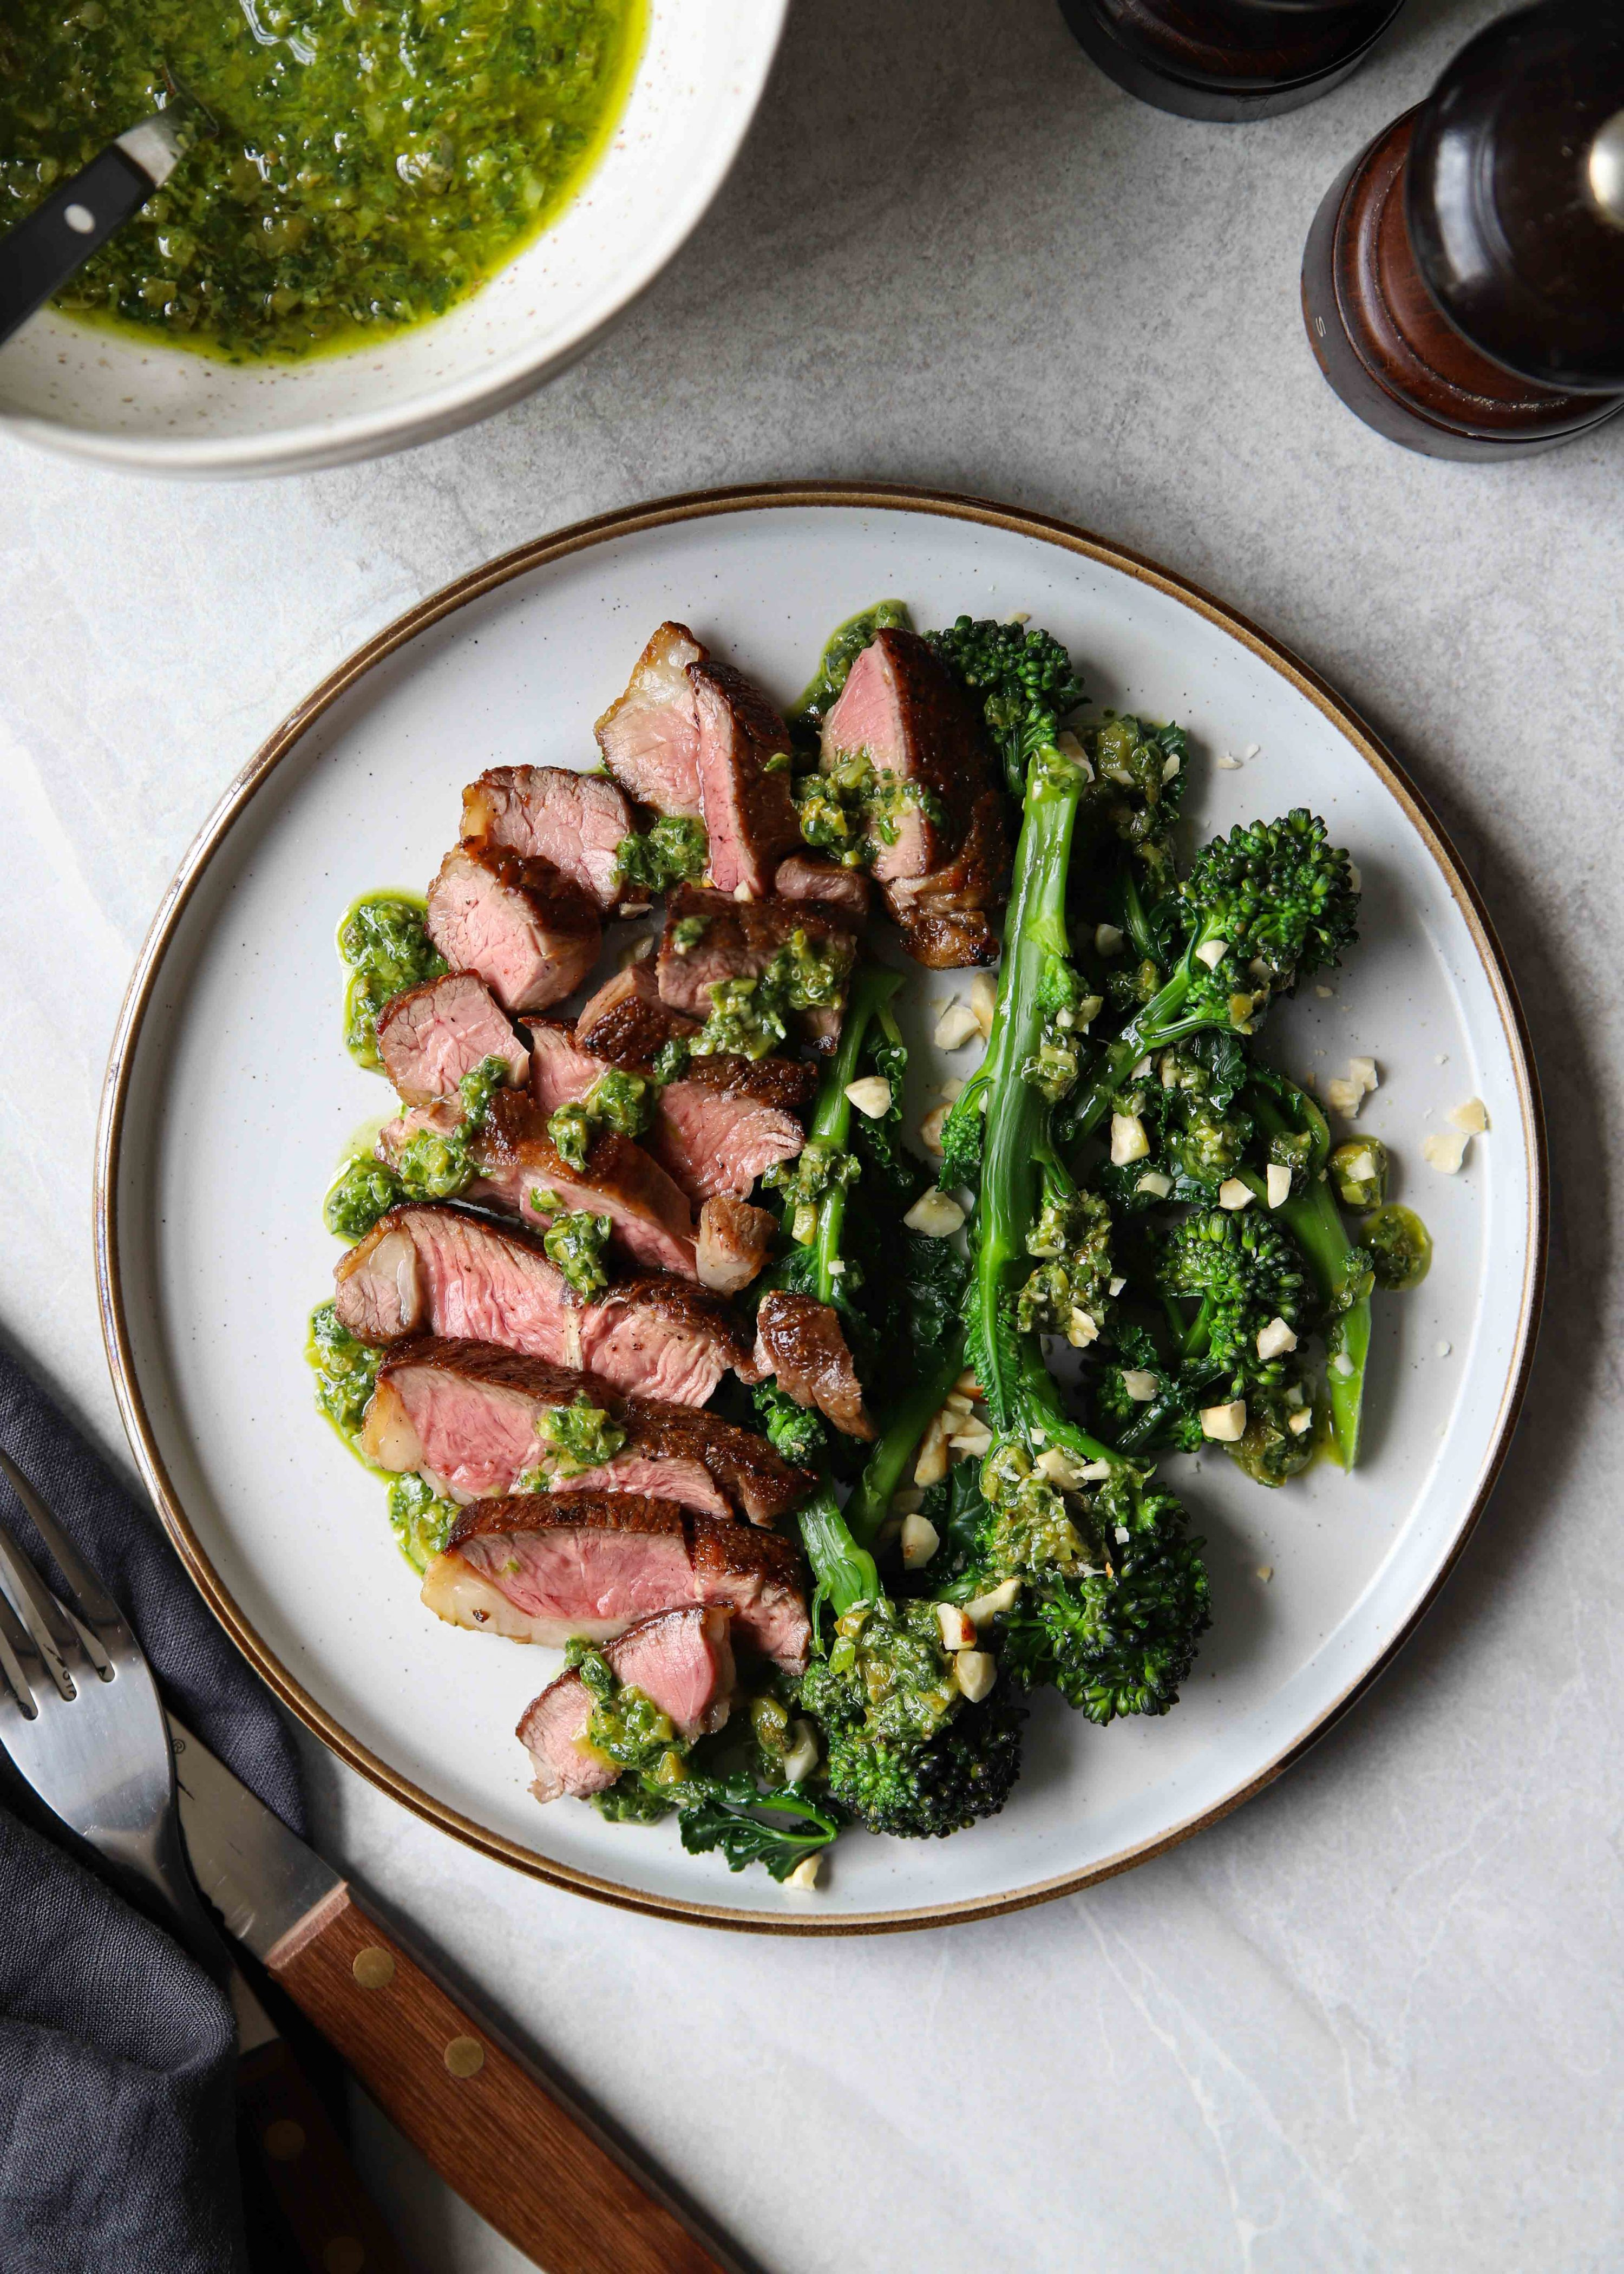 Lamb with salsa verde - That's how to cook a lamb rump steak!